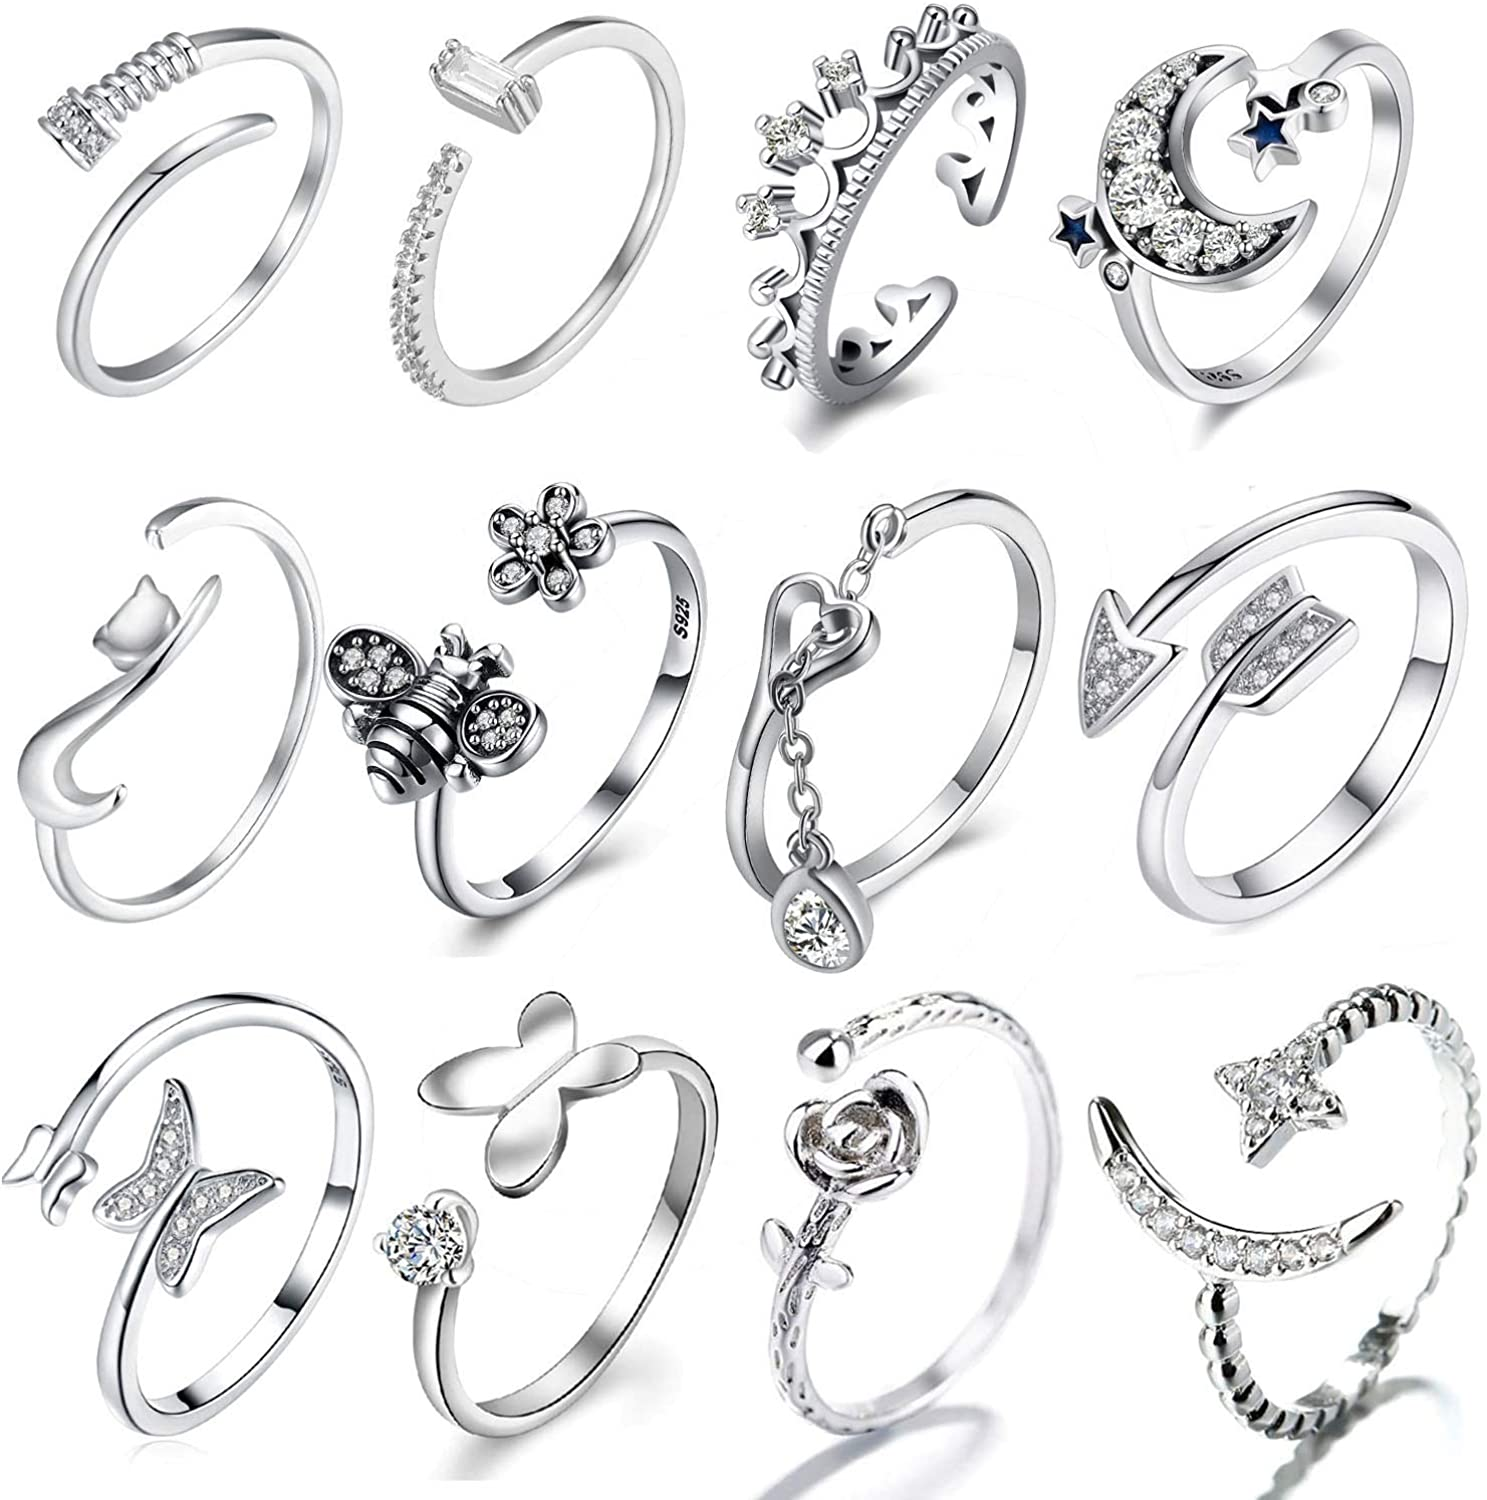 CARSHIER 12 Pcs Silver Plated Multiple Open Rings for Women Vintage Retro Wave Flower Arrow Stackable Thumb Rings Set Adjustable